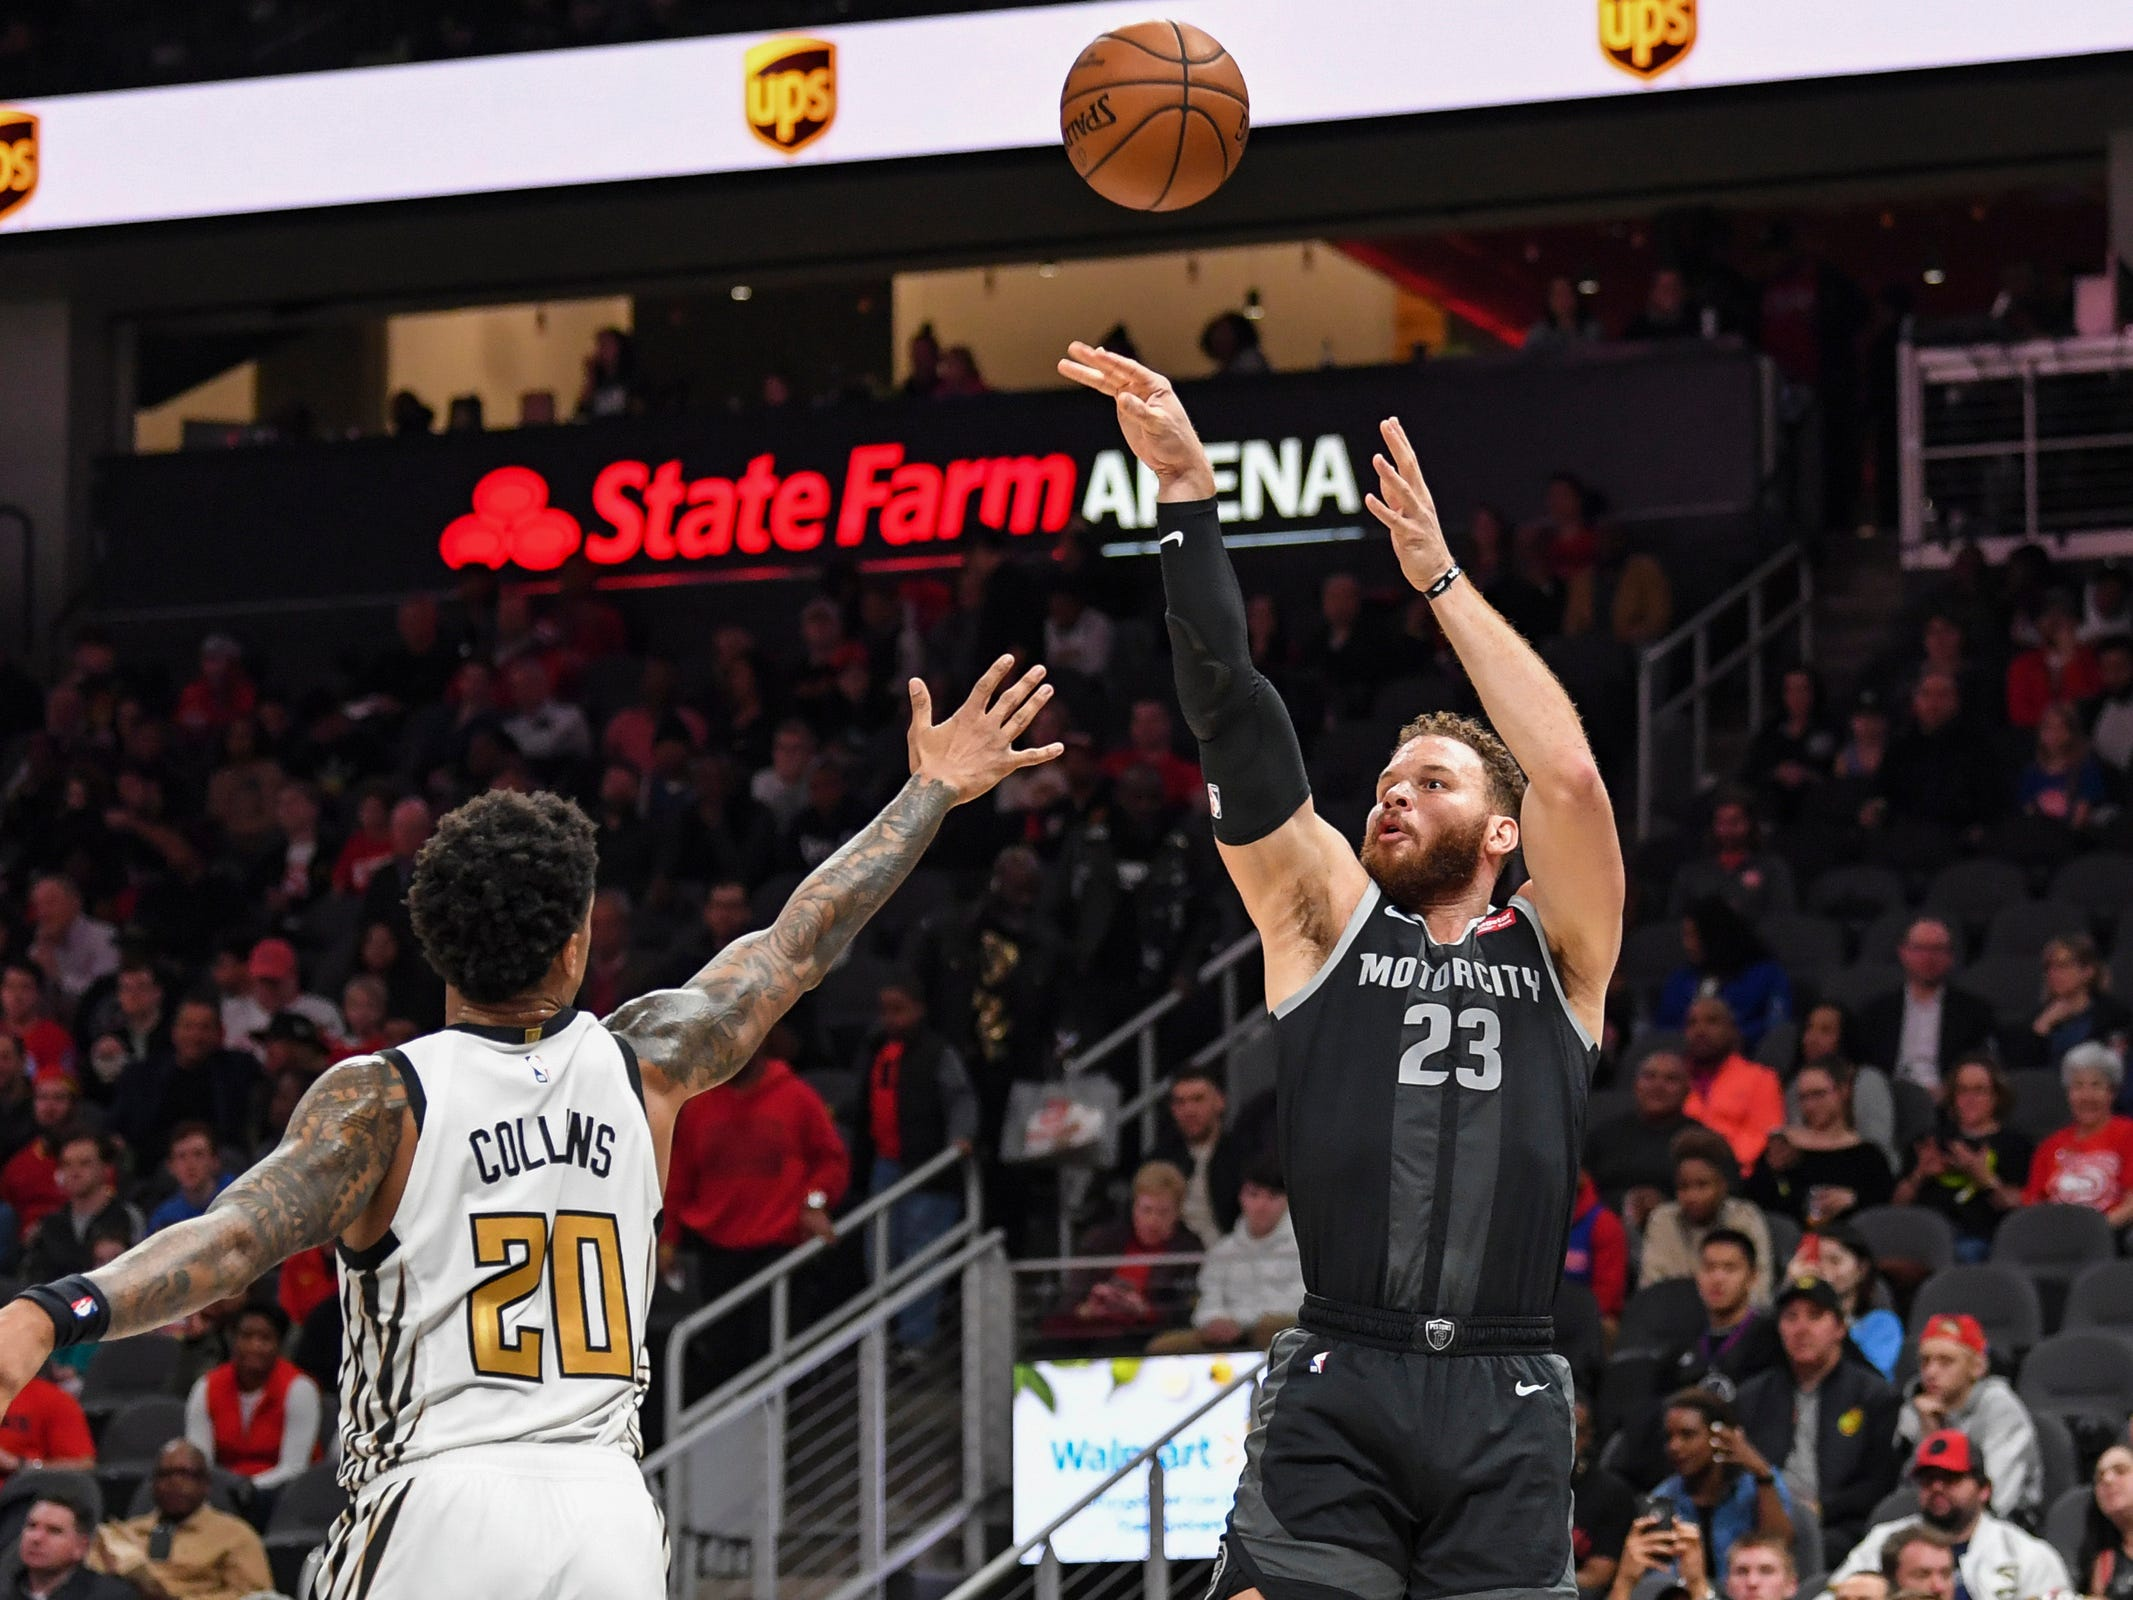 Detroit Pistons forward Blake Griffin (23) shoots the ball over Atlanta Hawks forward John Collins (20) during the first half at State Farm Arena on Feb. 22, 2019.